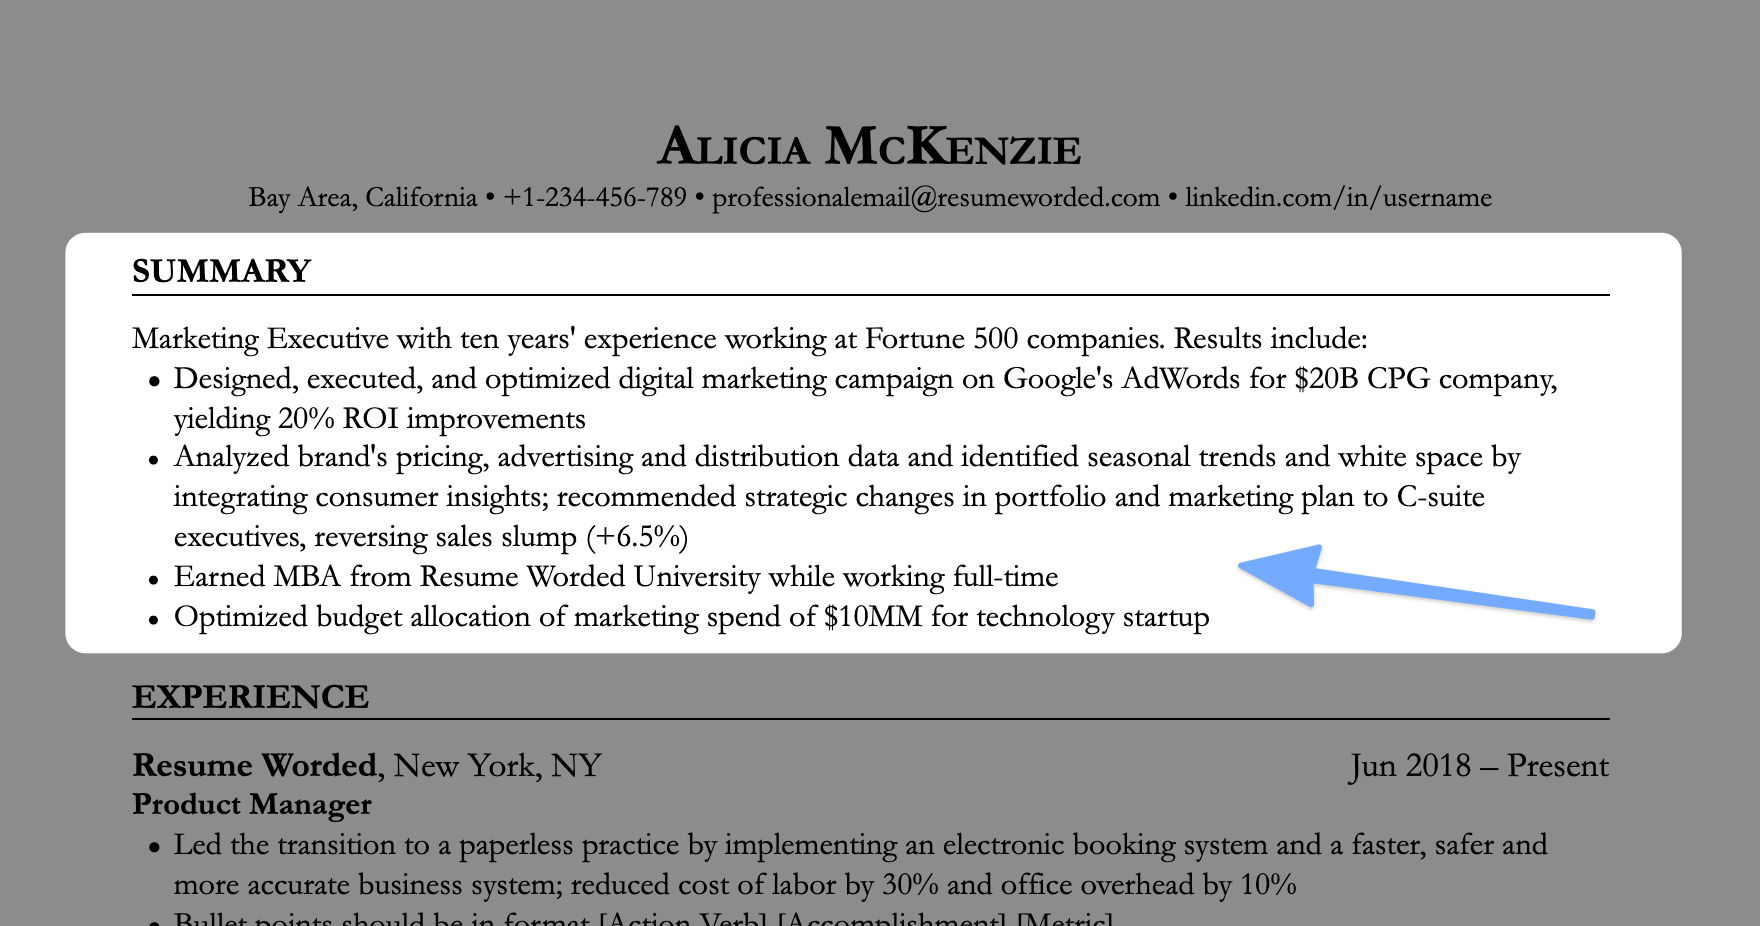 Use specific accomplishments and hard numbers in your resume's opening statement or summary